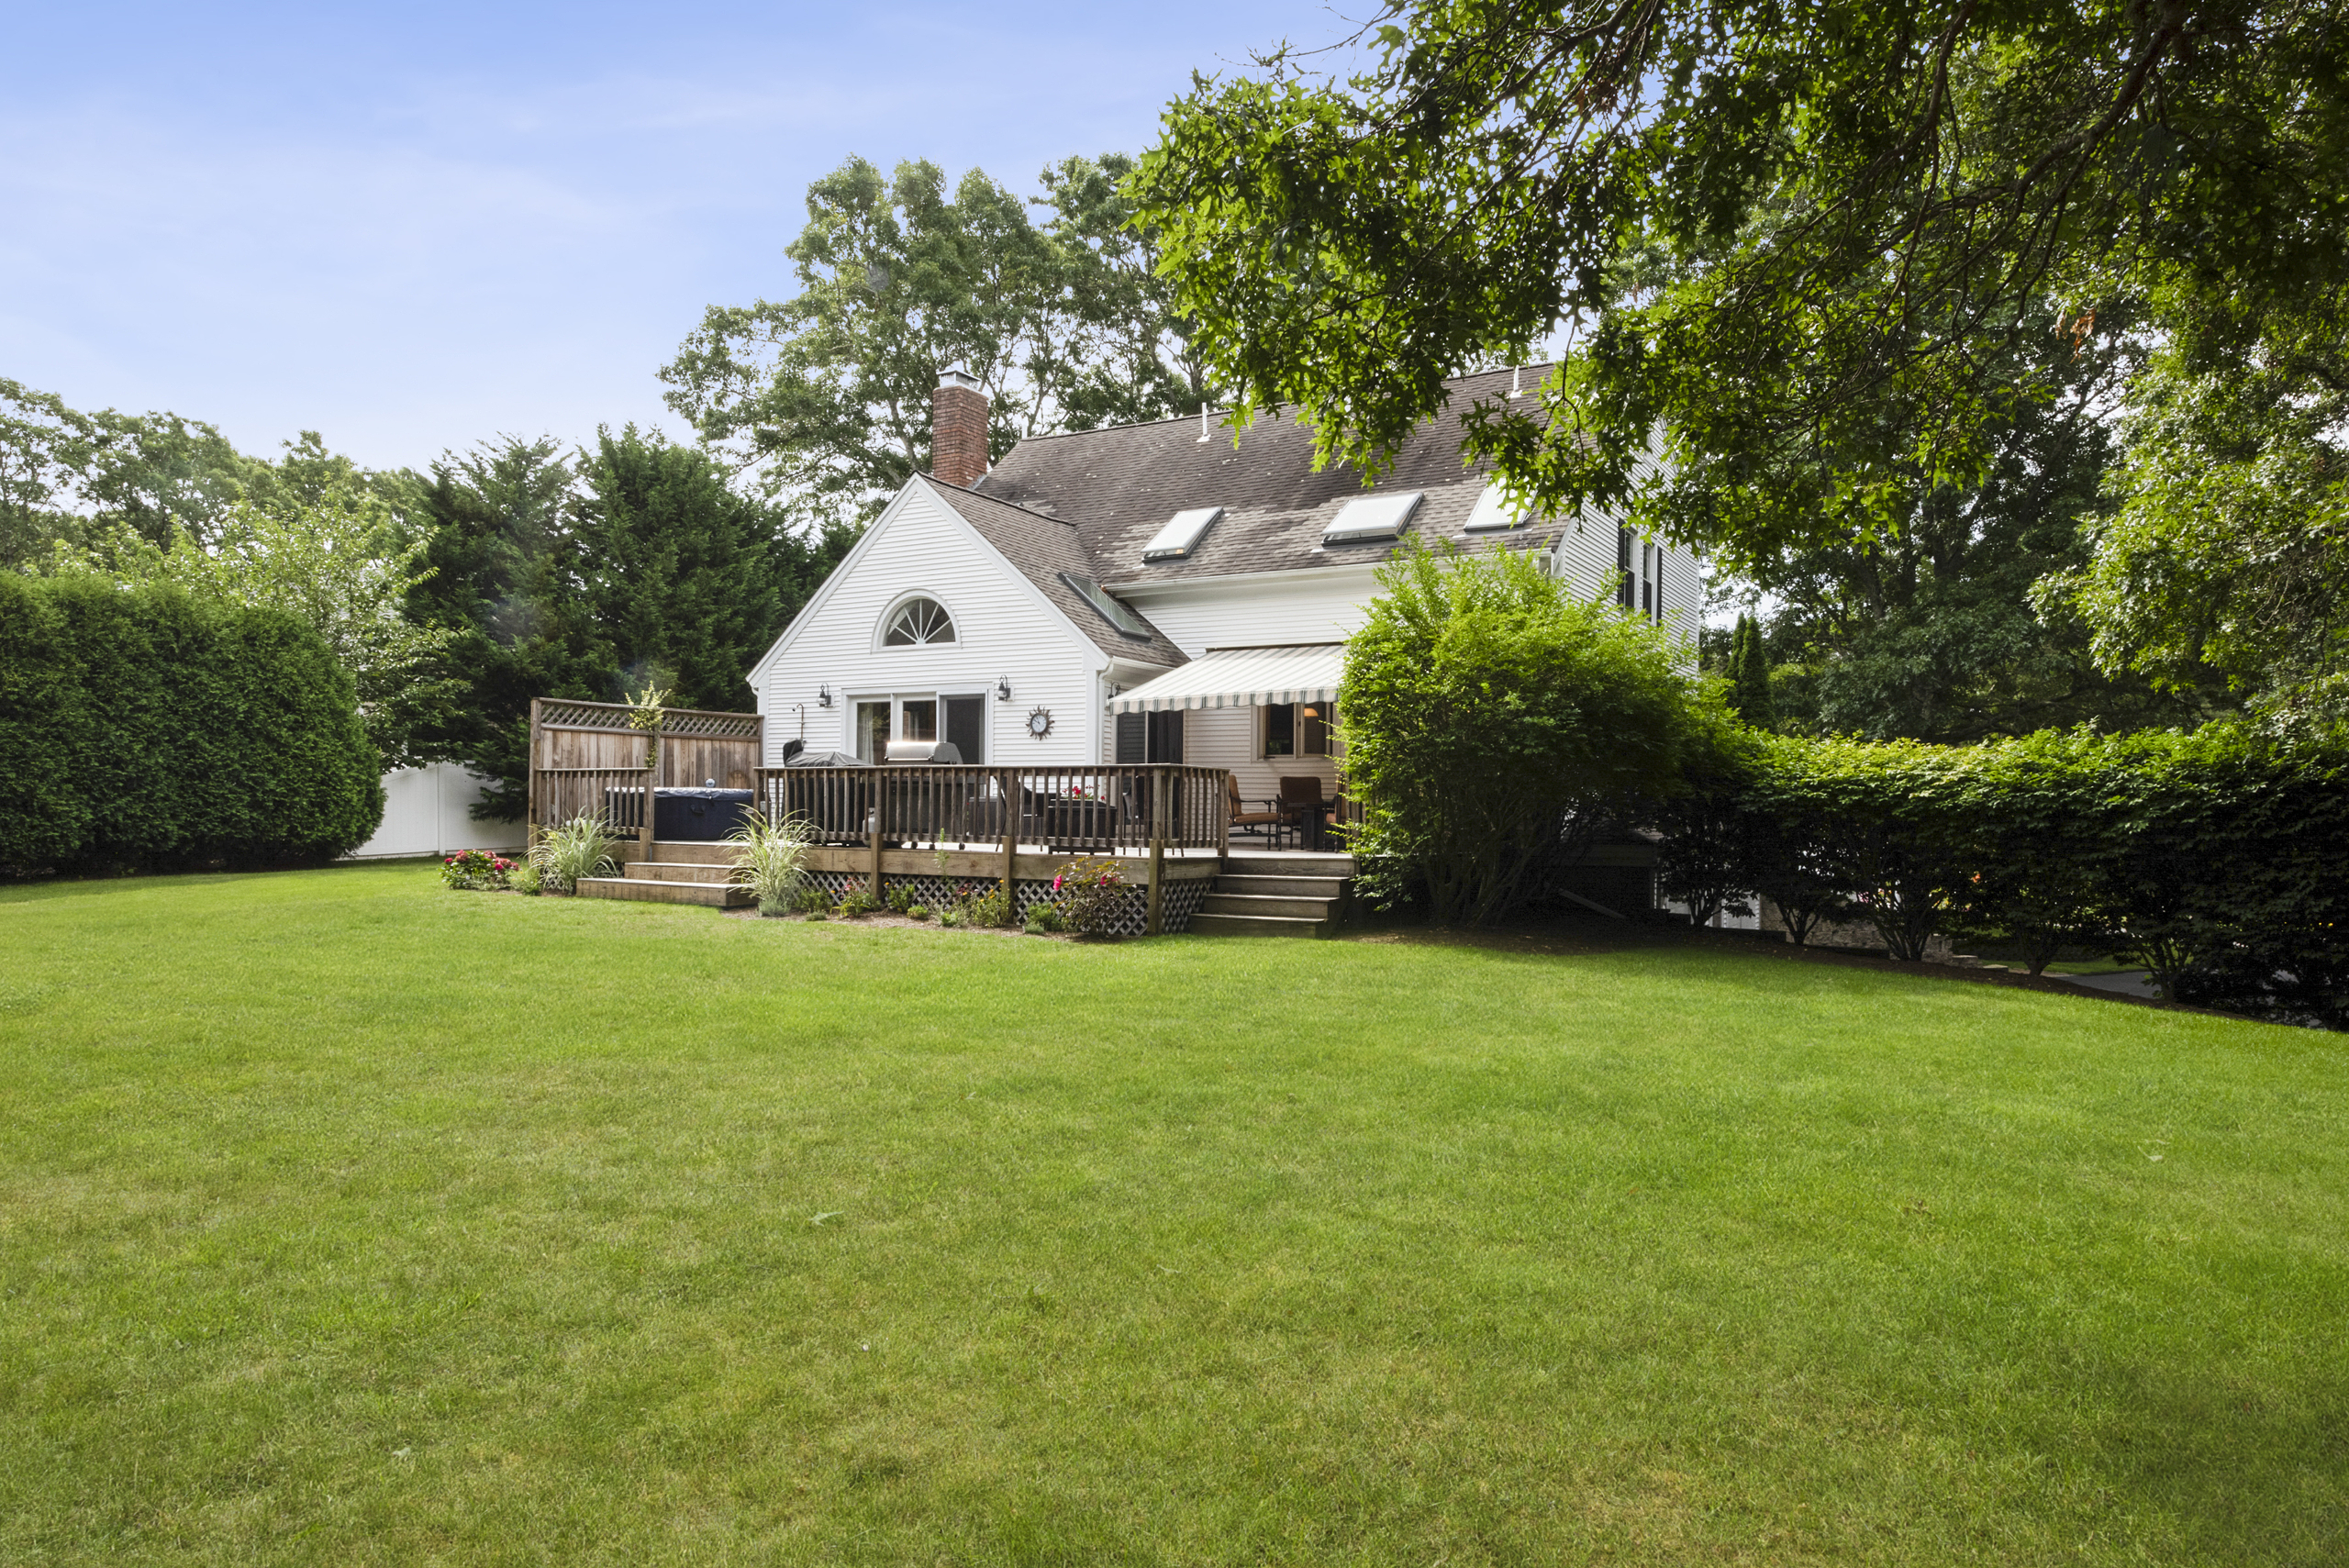 11 Elijahs Hollow Road, Sandwich, MA | Listed By Griffin Realty Group | MLS #22104526